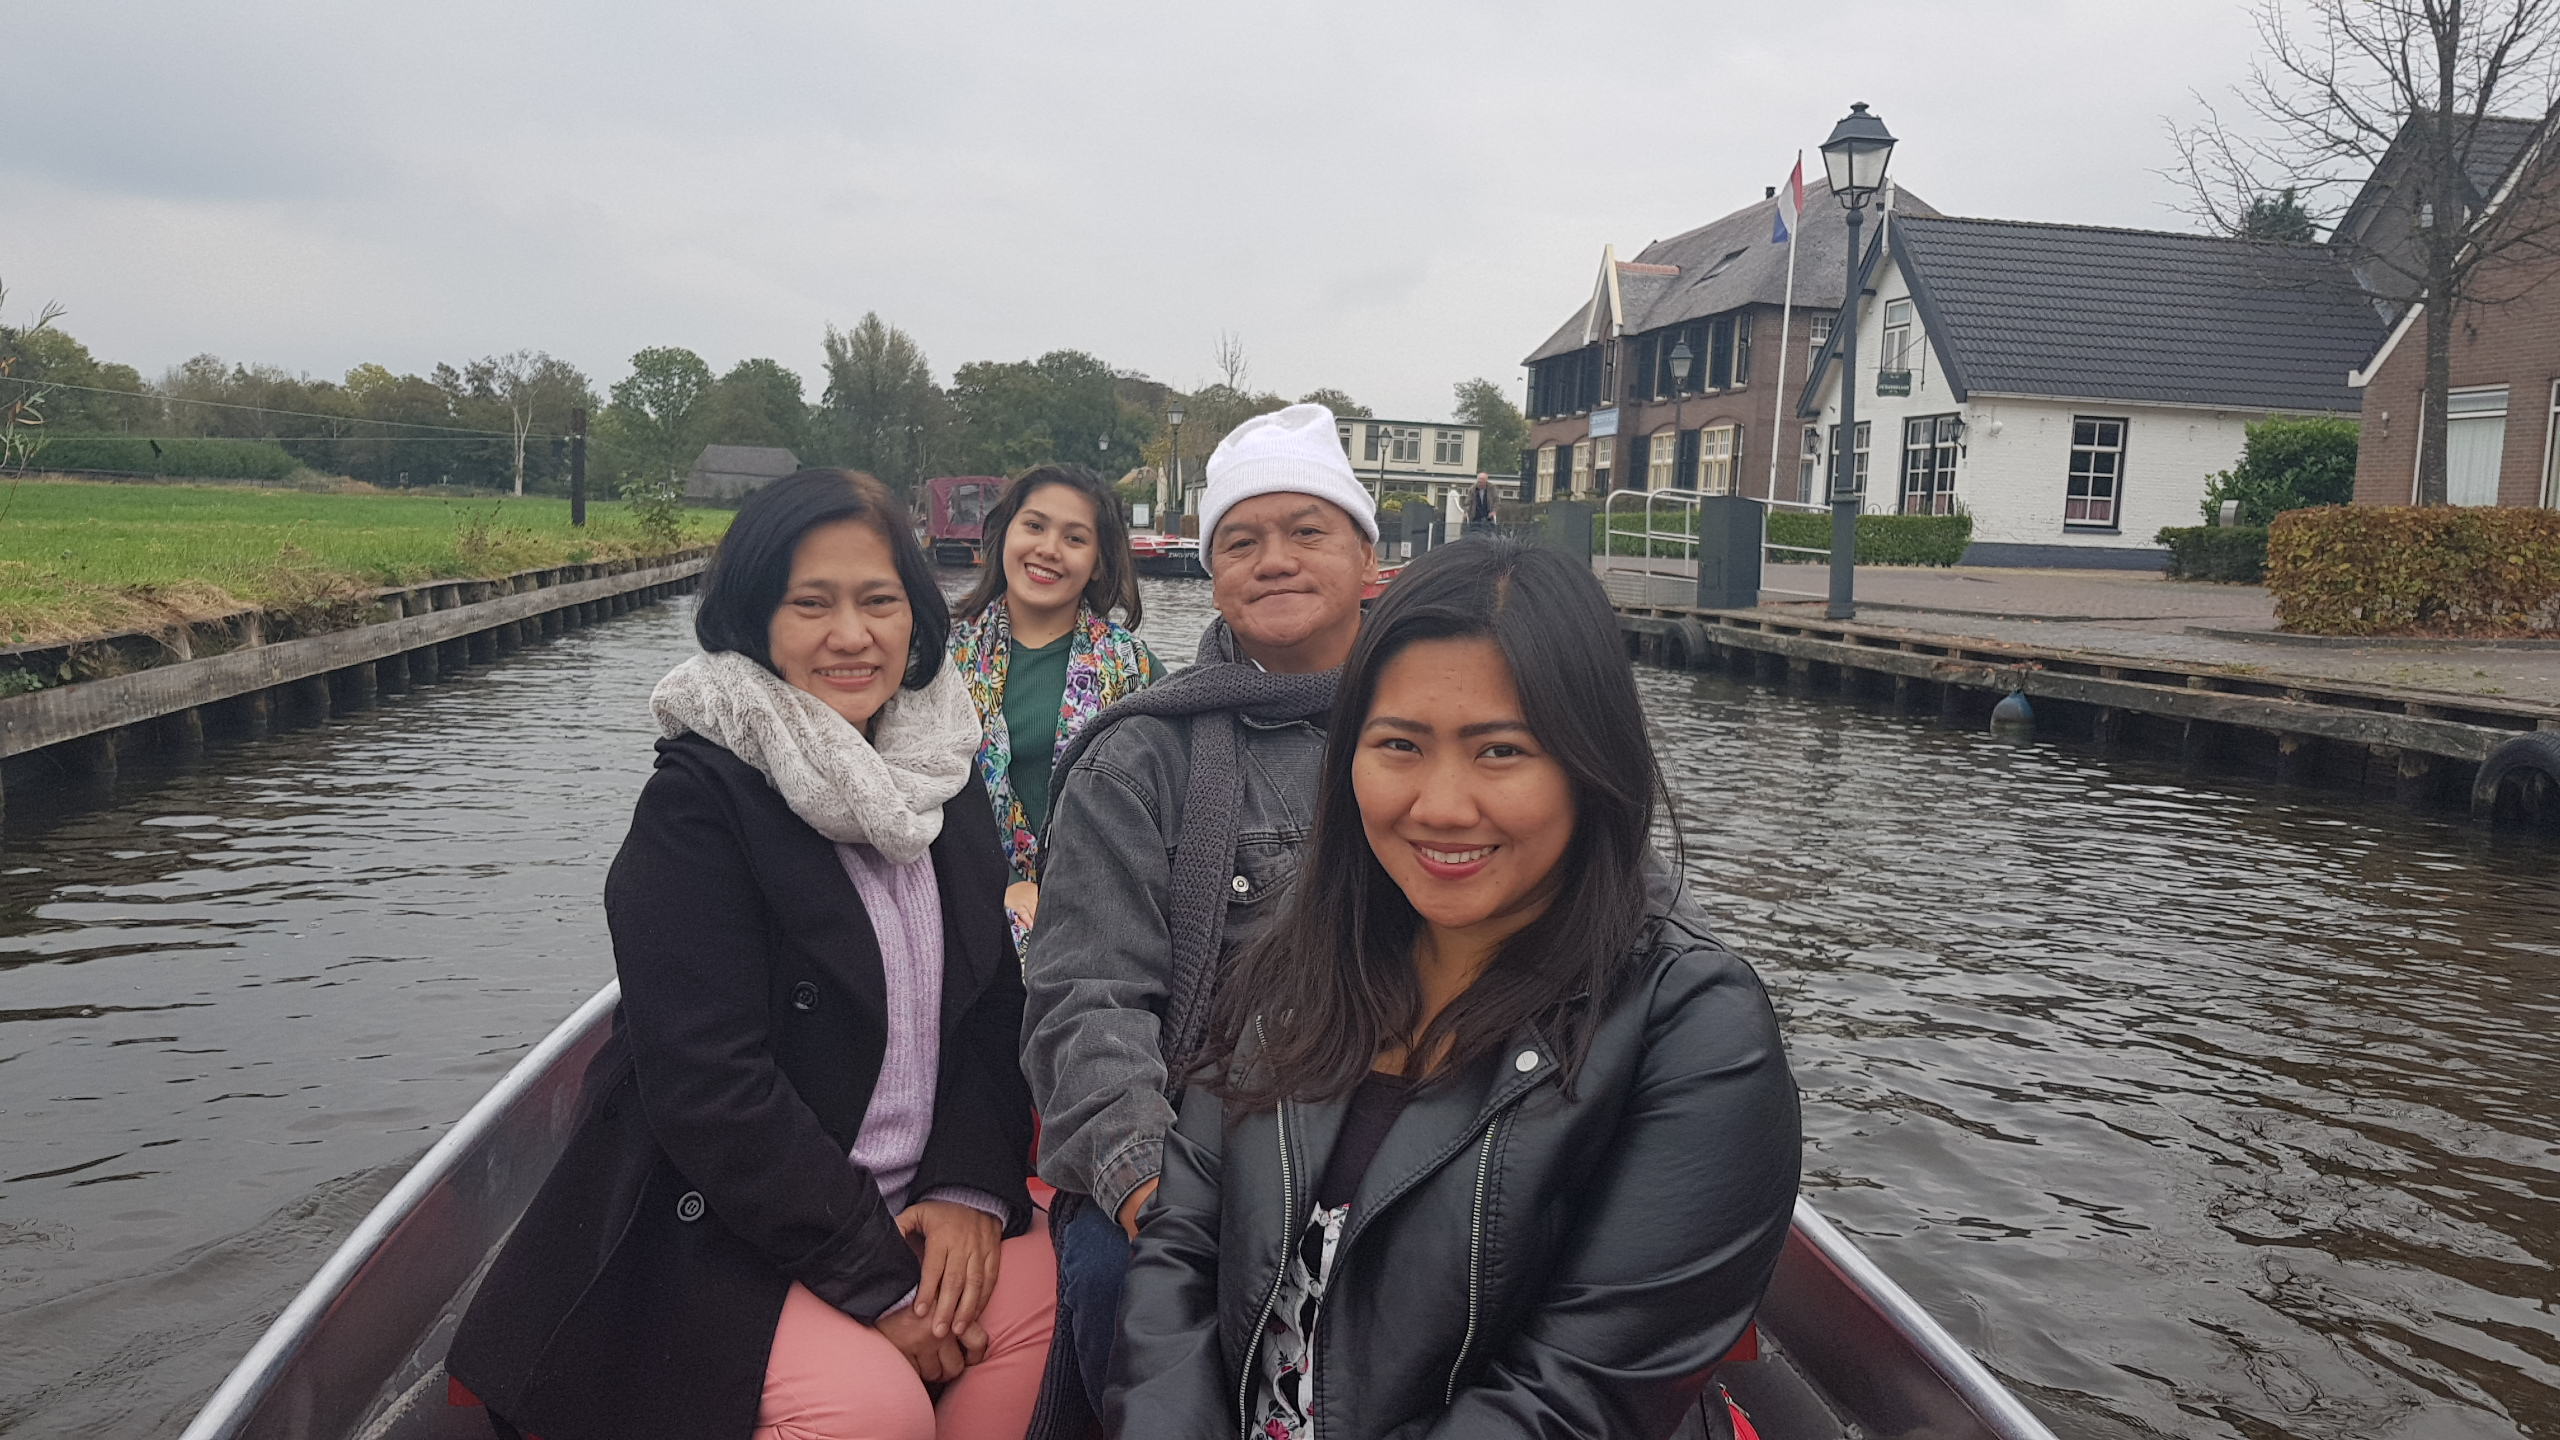 We rented our own boat to explore the canals of Giethoorn.